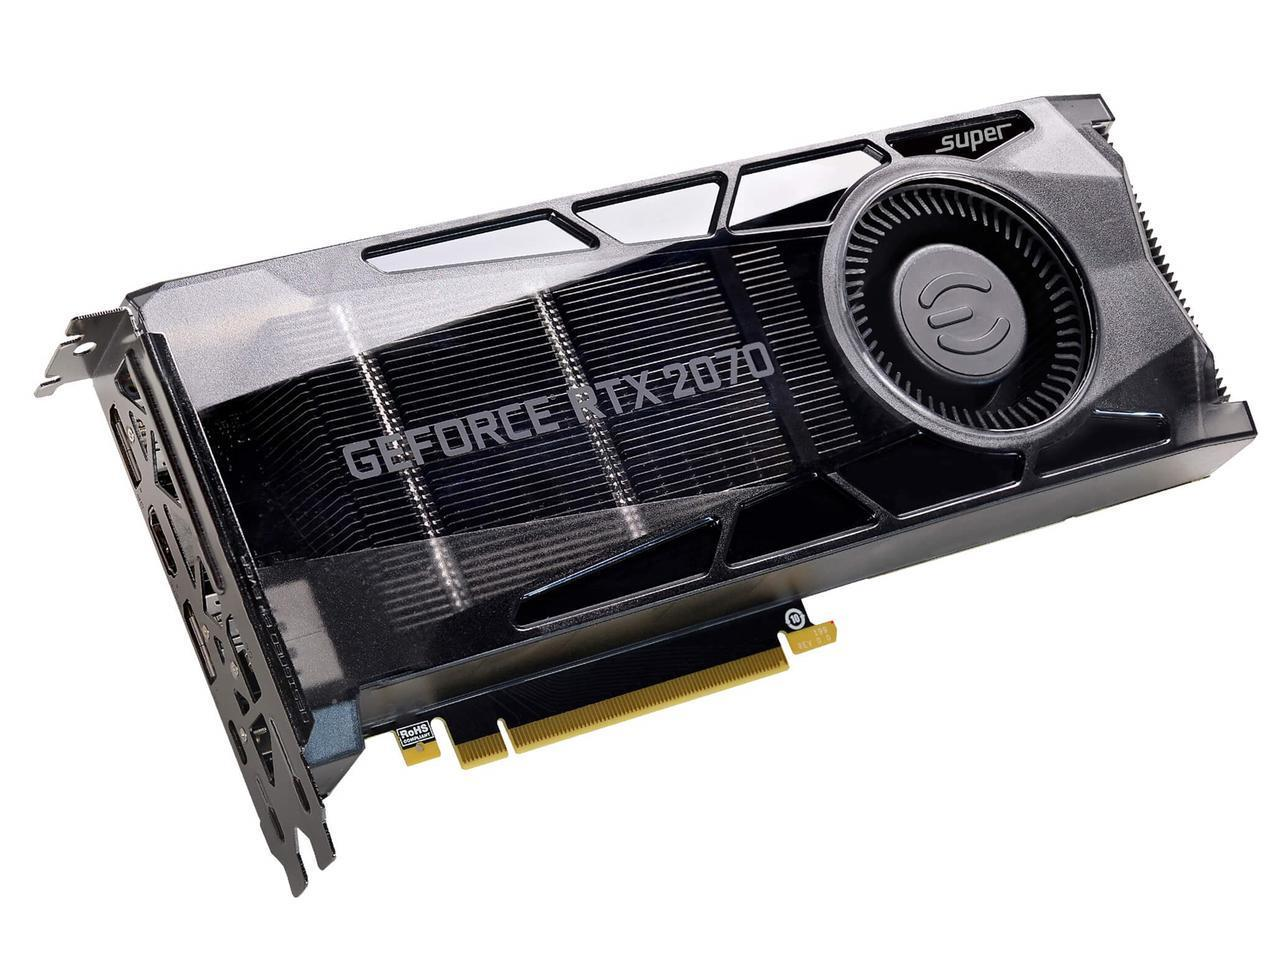 EVGA GeForce 2070 SUPER GAMING